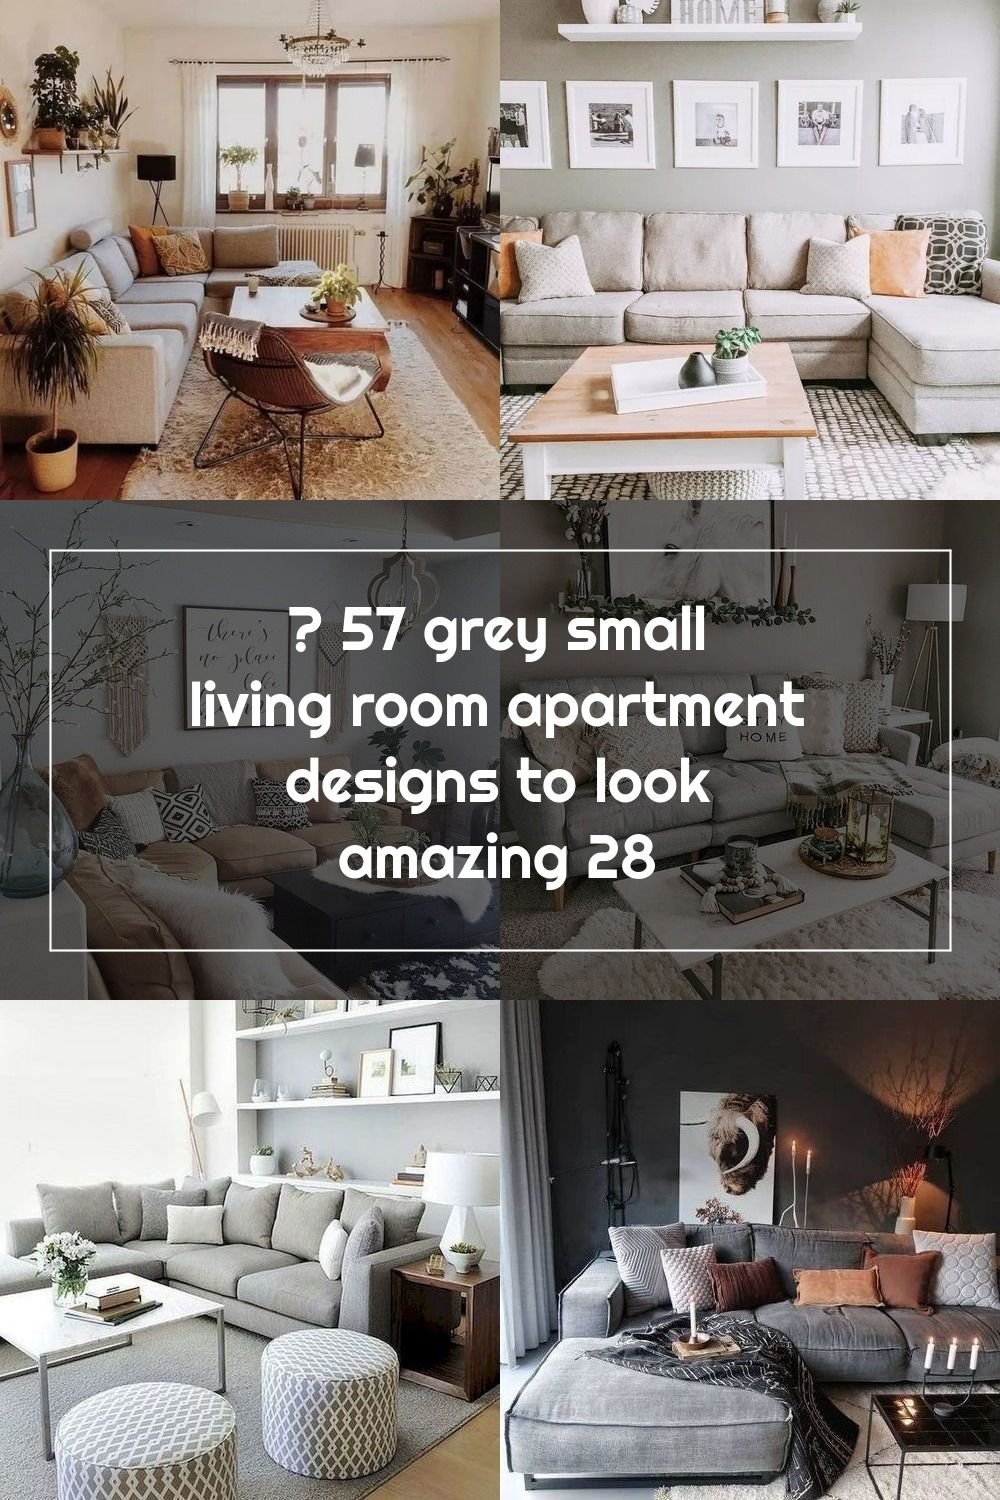 57 Grey Small Living Room Apartment Designs to Look Amazing #greylivingroom #smalllivingroom #livingroomdesign :